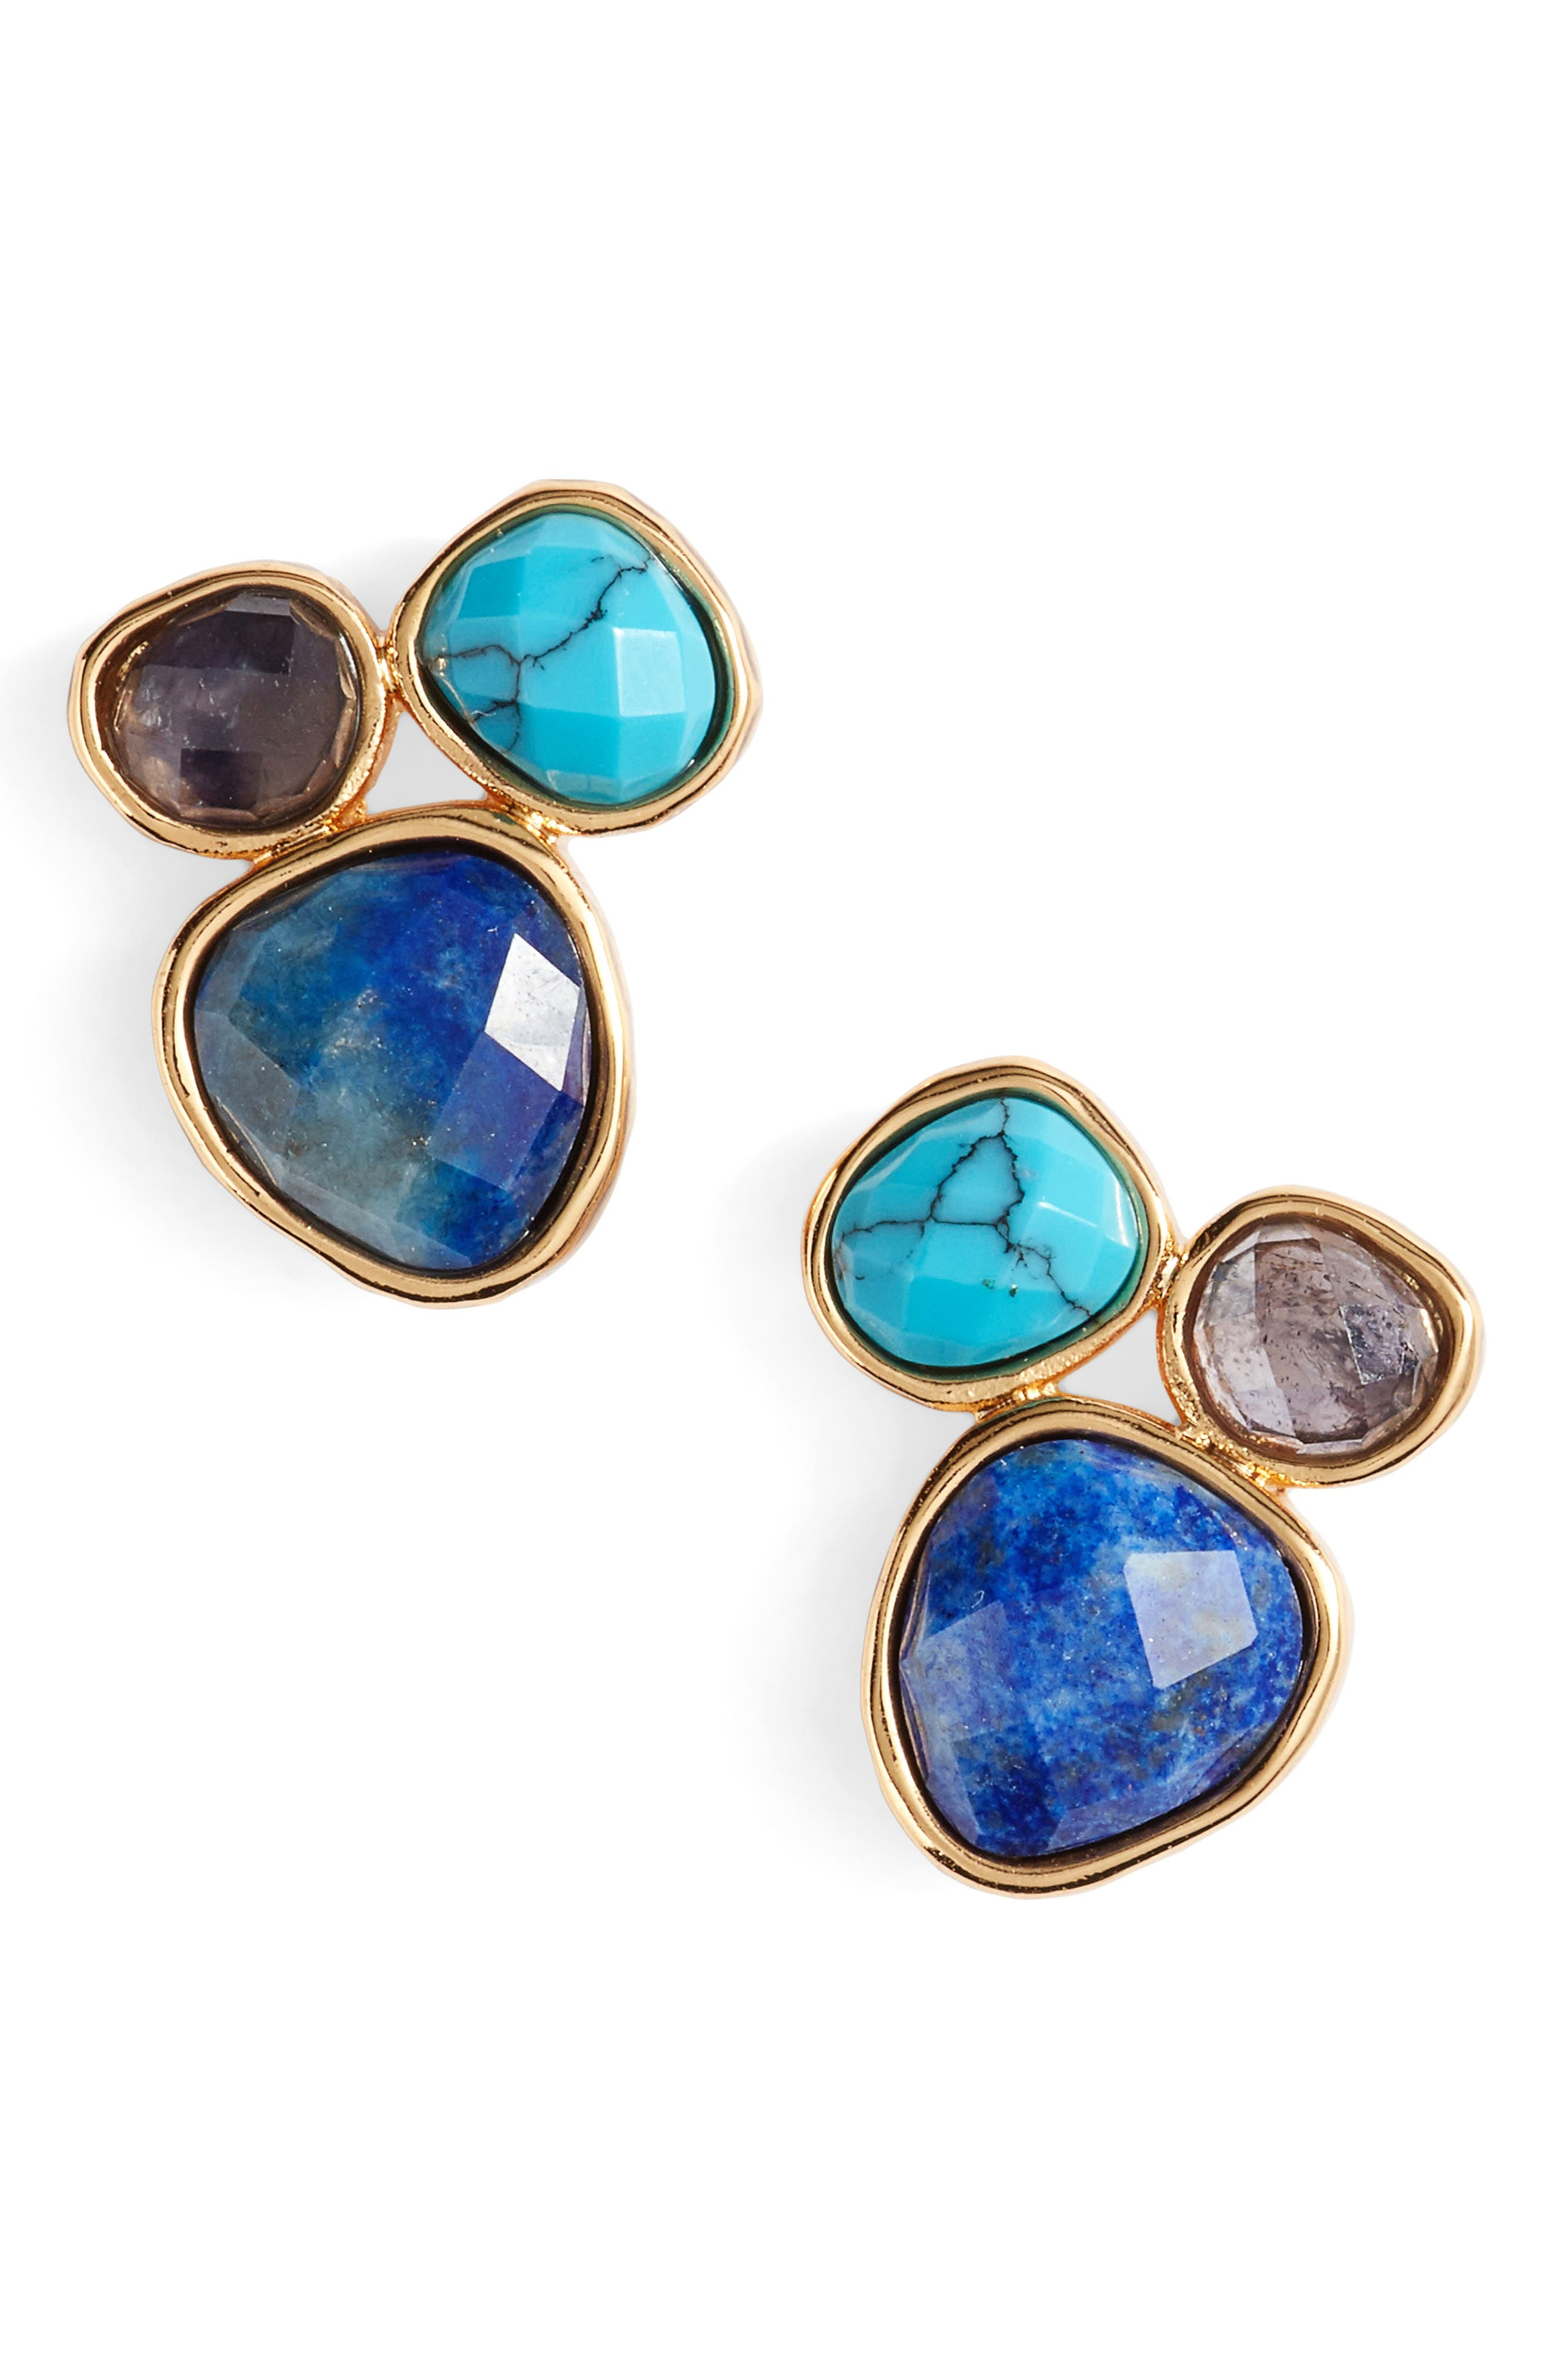 gorjana Lola Semiprecious Stone Stud Earrings